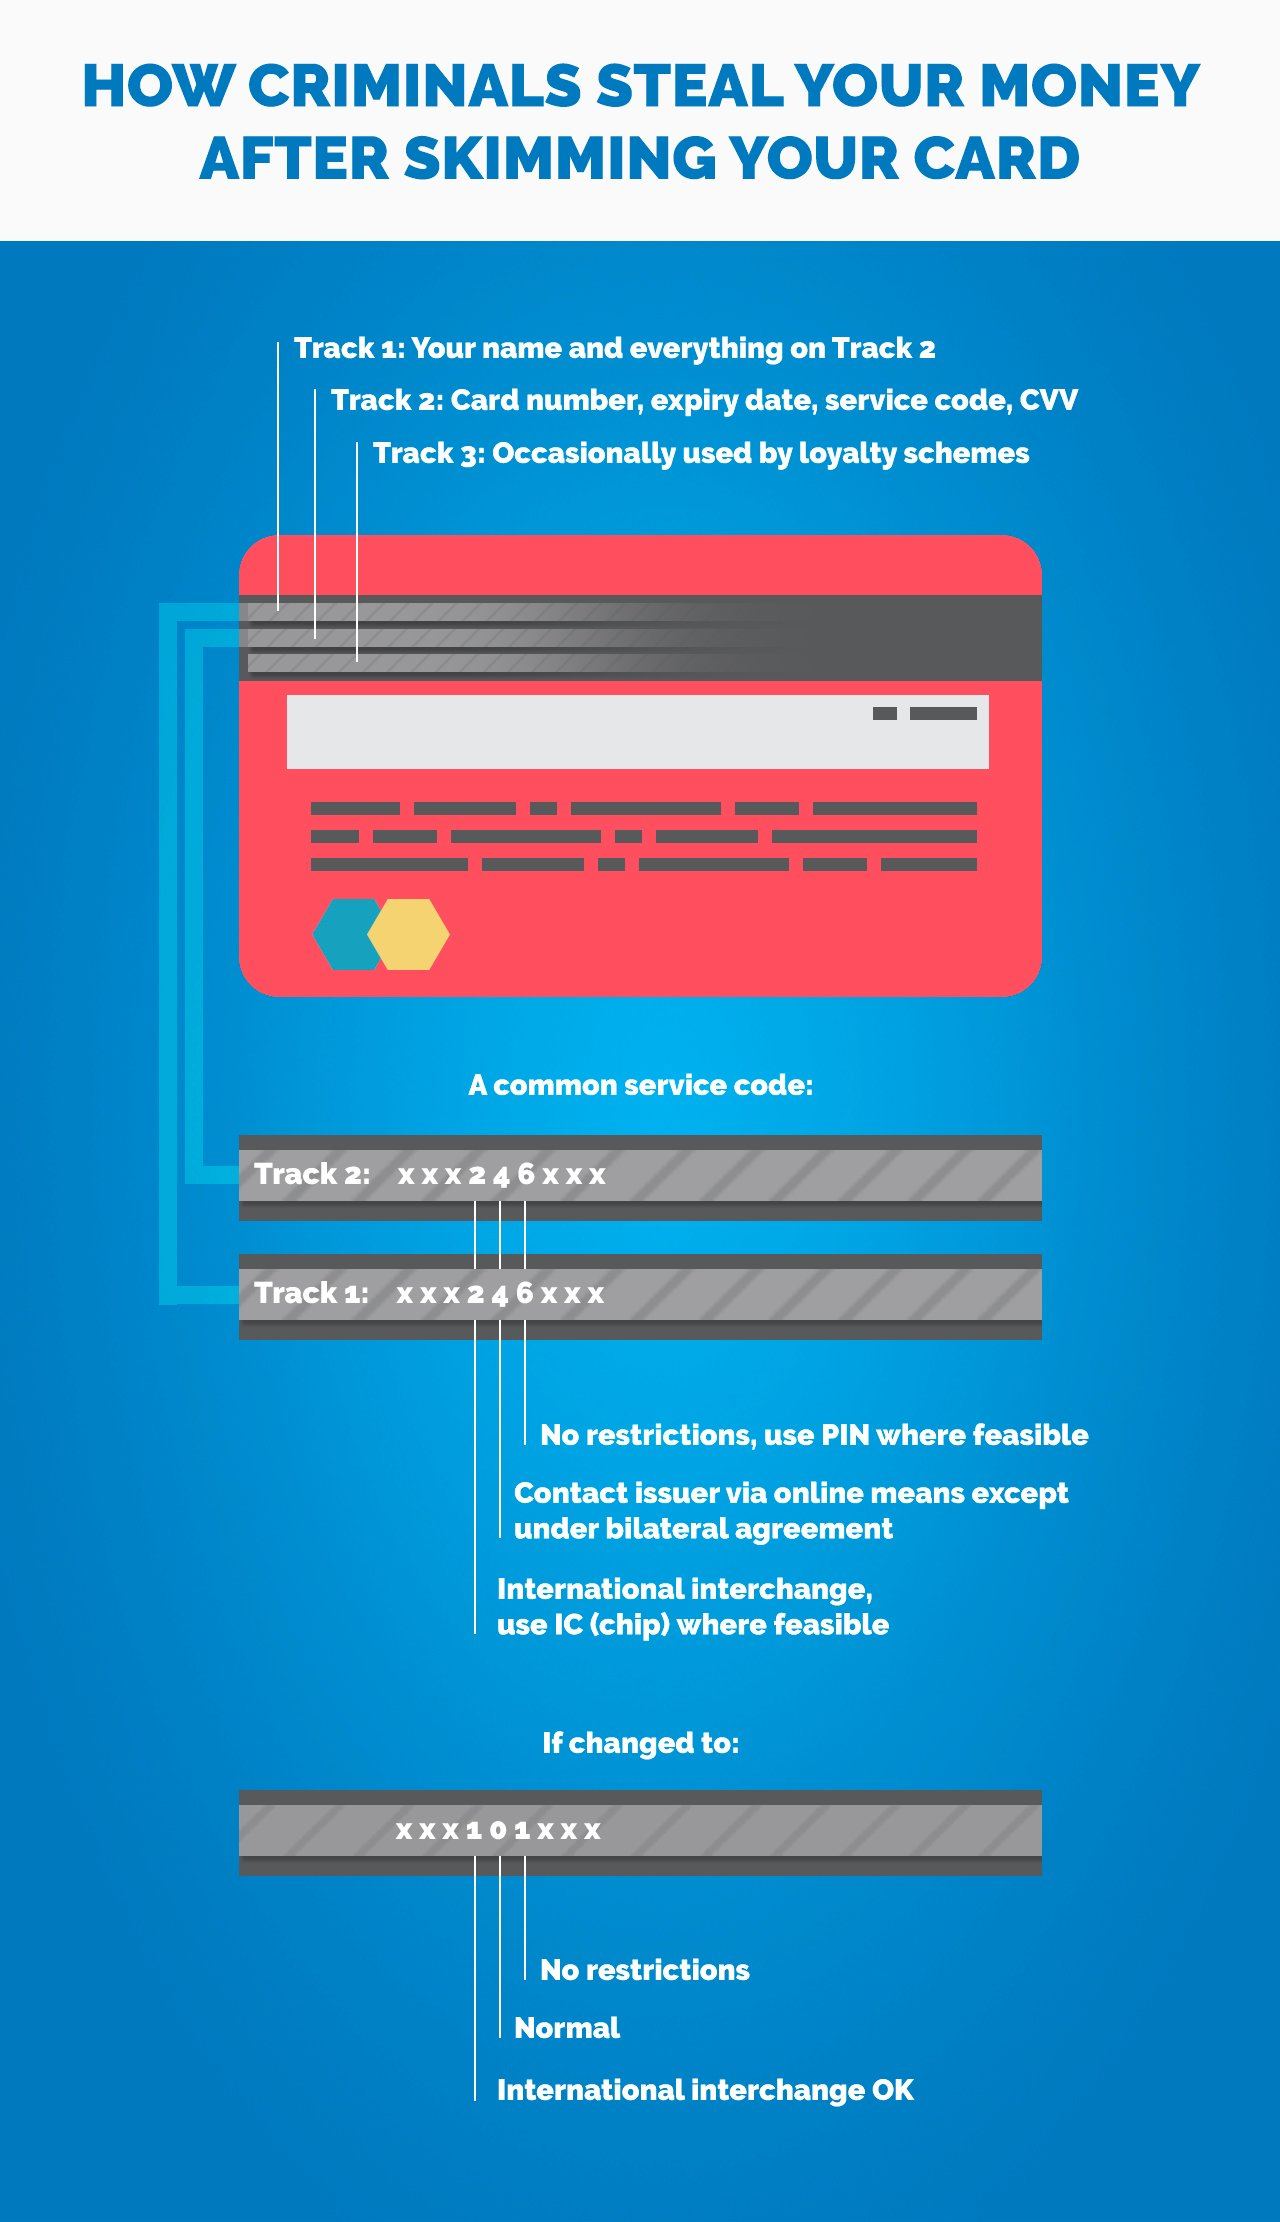 How your chip-and-PIN bank card gets skimmed and your money